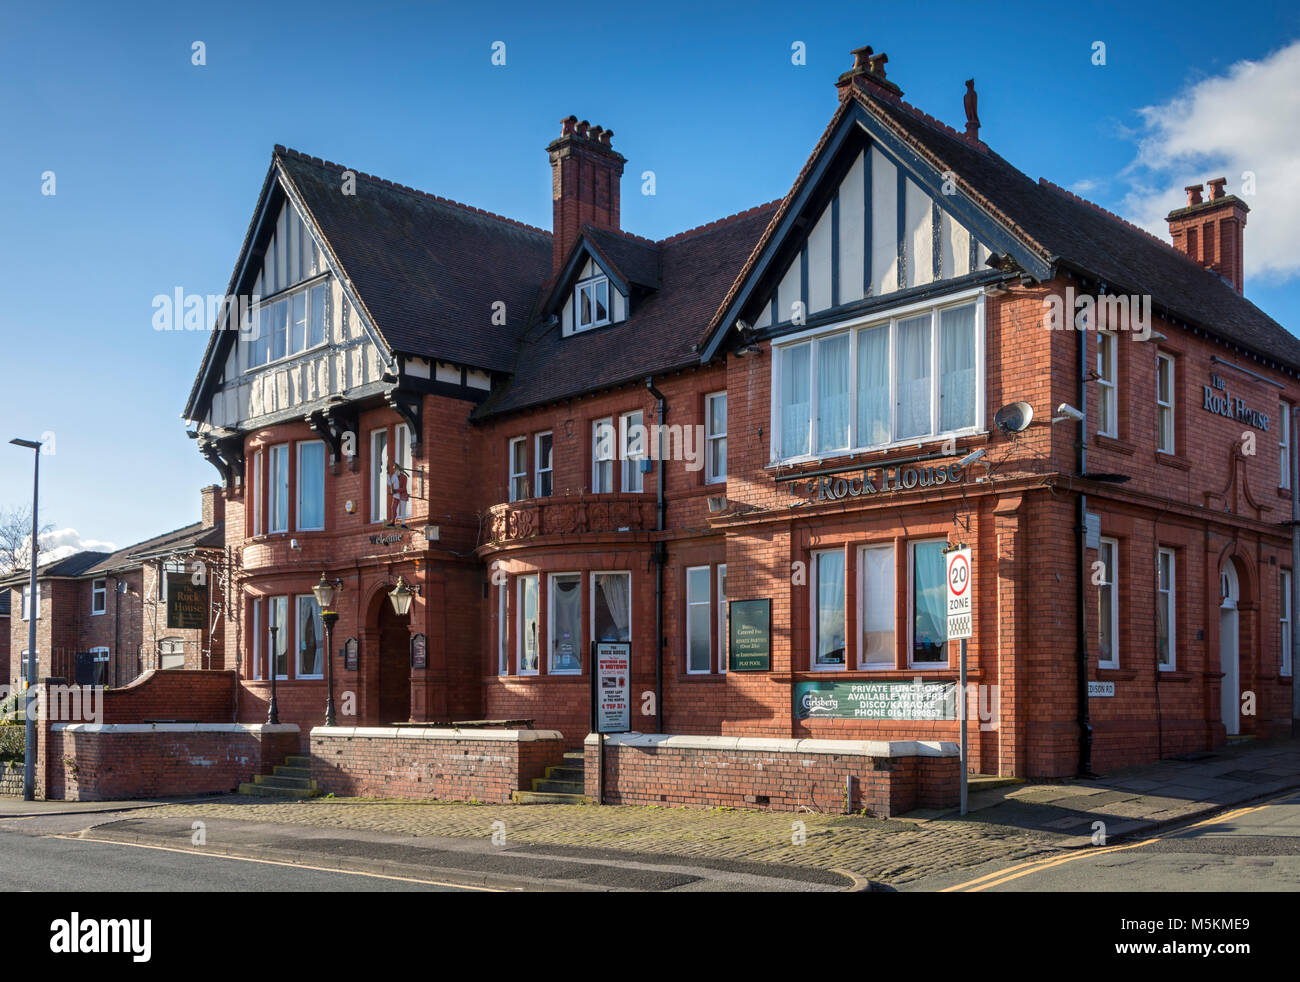 The Rock House Hotel, Peel Green Road, Barton-upon-Irwell, Eccles, Manchester, UK. - Stock Image